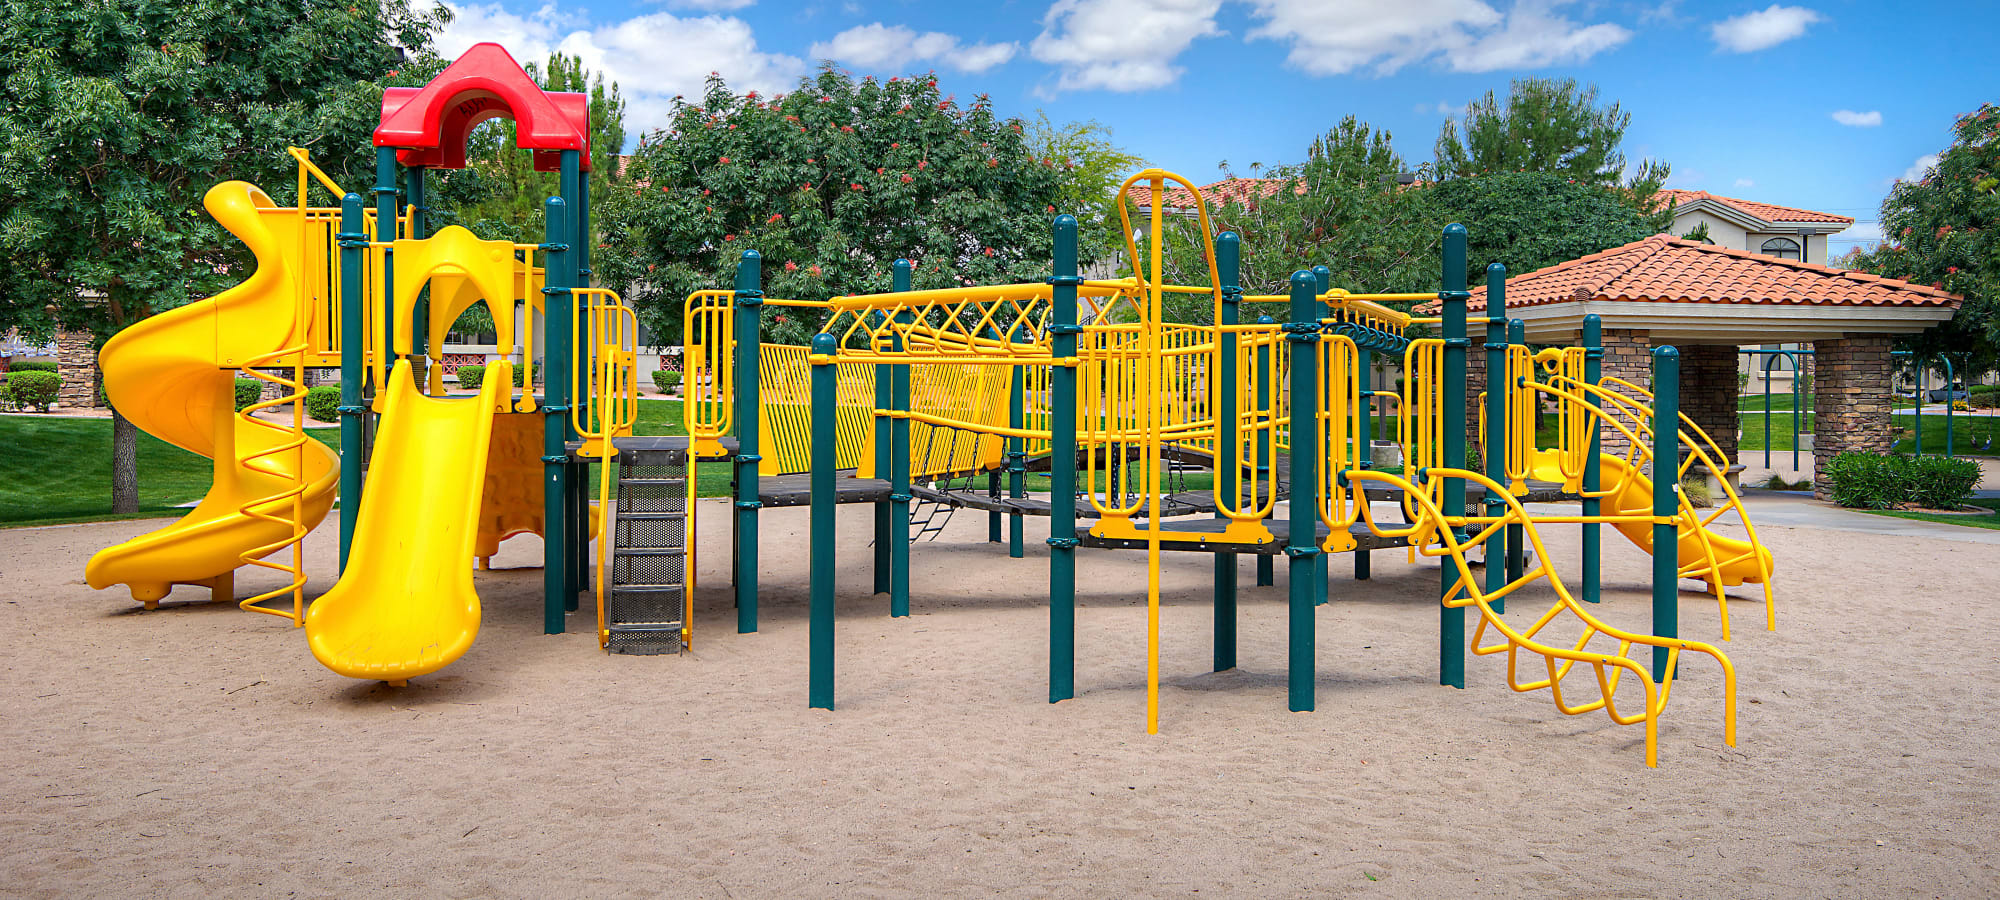 Onsite playground at San Palacio in Chandler, Arizona